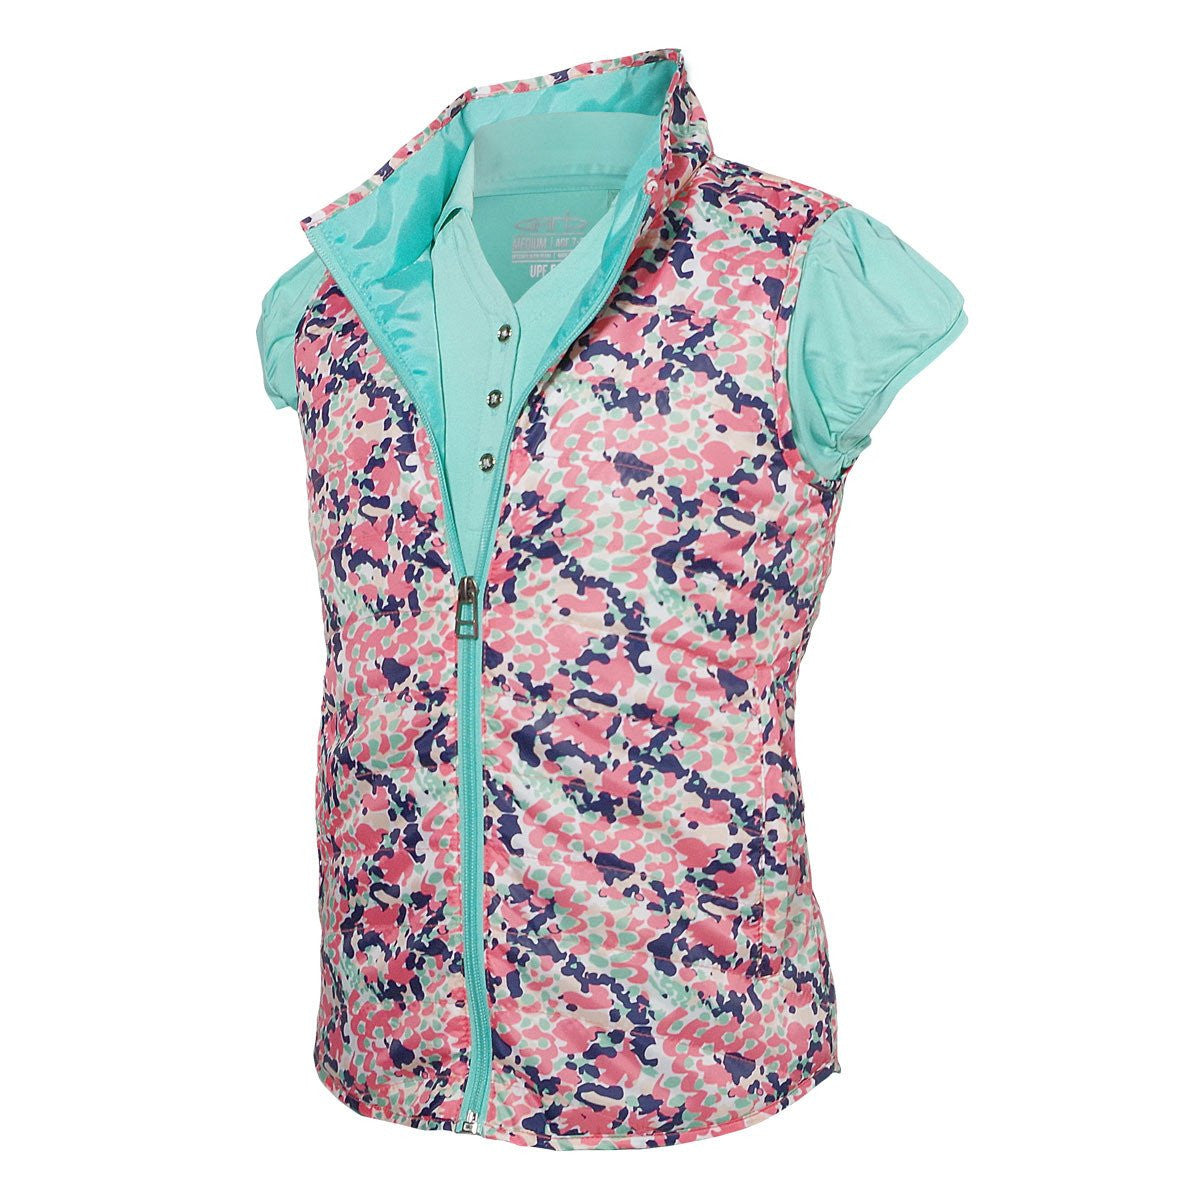 Brooke - Girl's Golf Vest